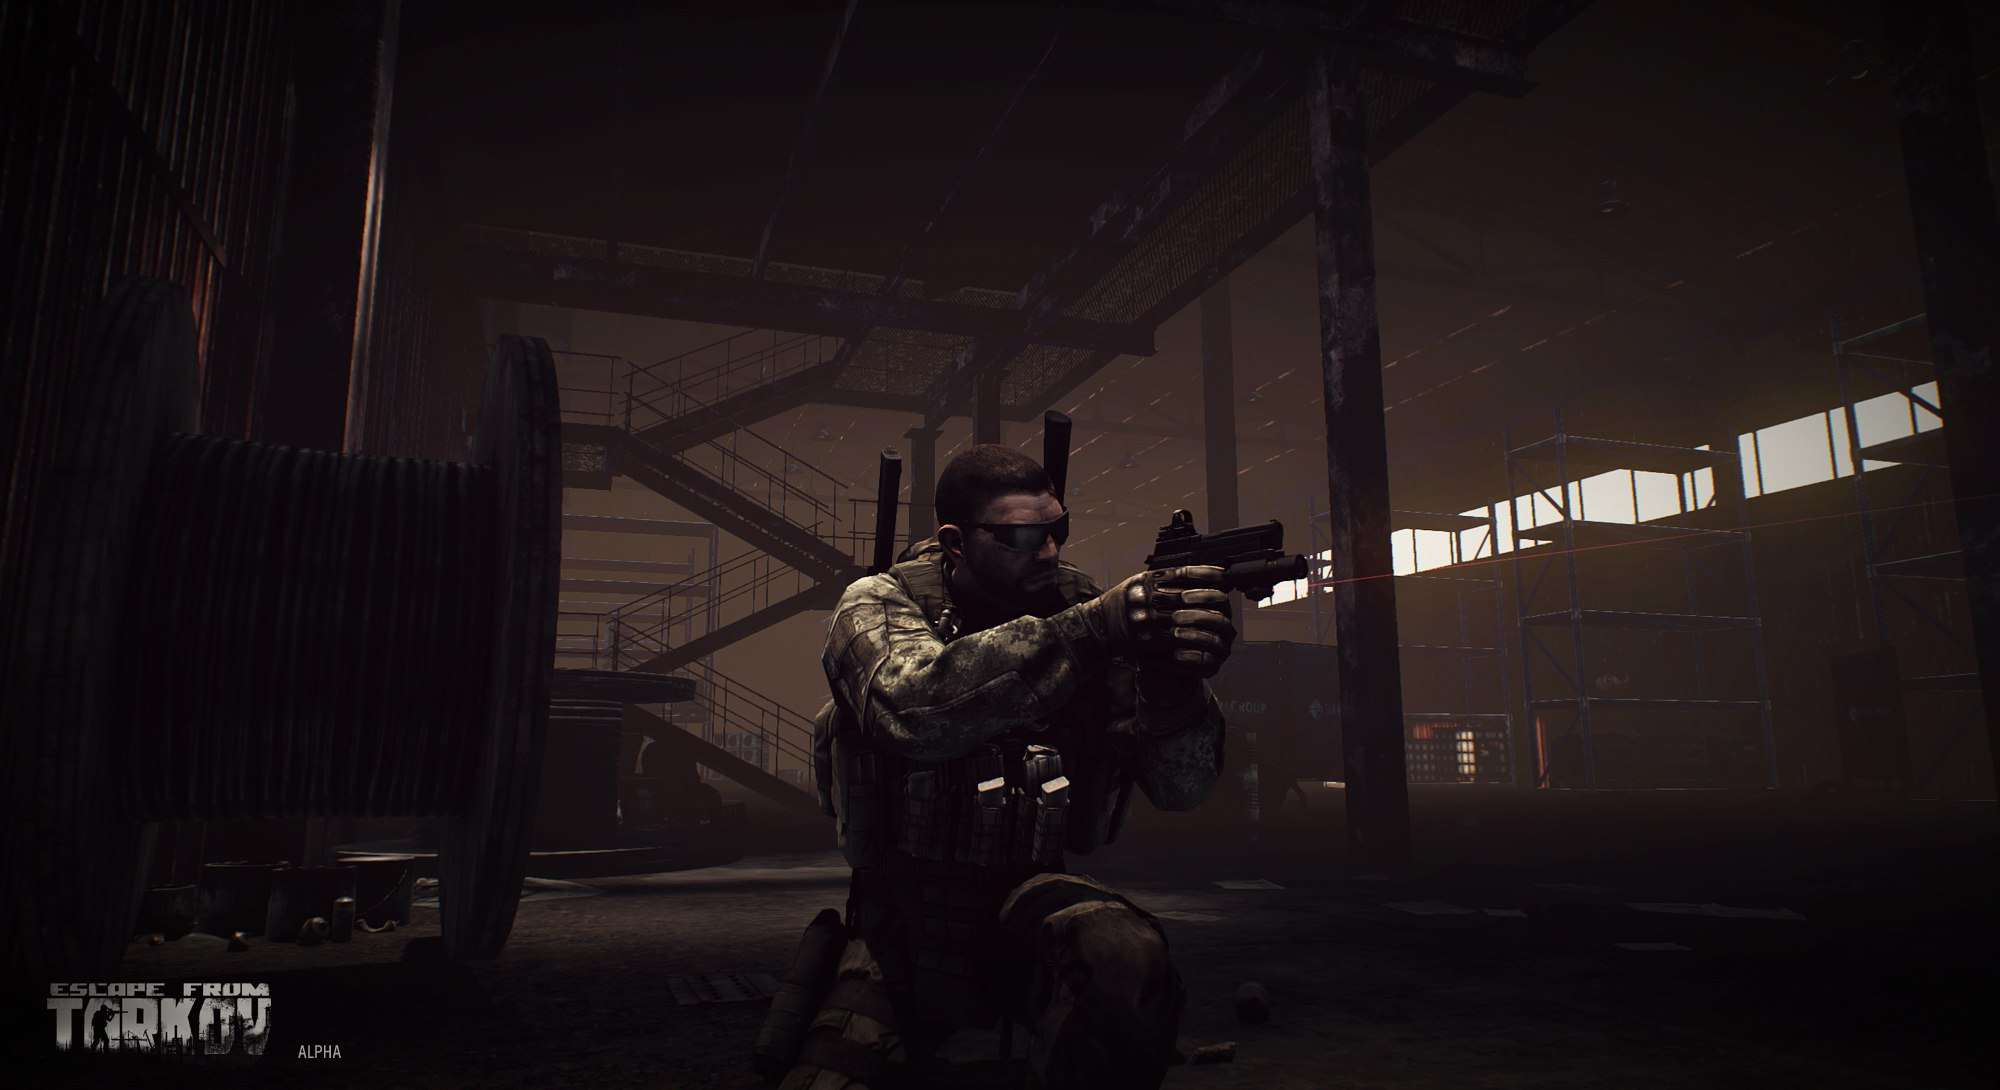 Escape From Tarkov - Page 4 - Other Games - BlackFoot Studios